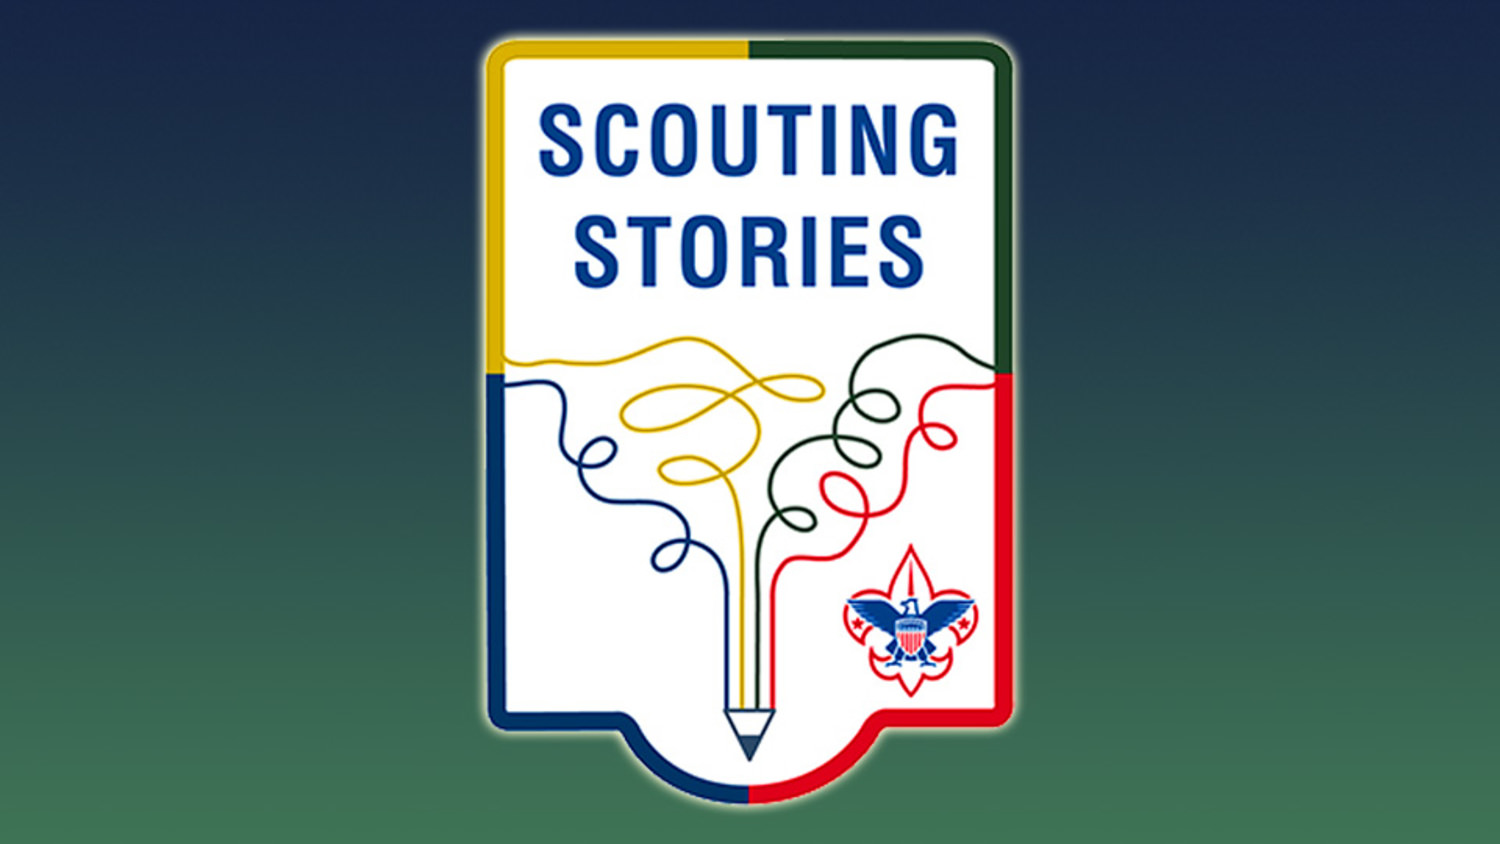 Scouting Stories